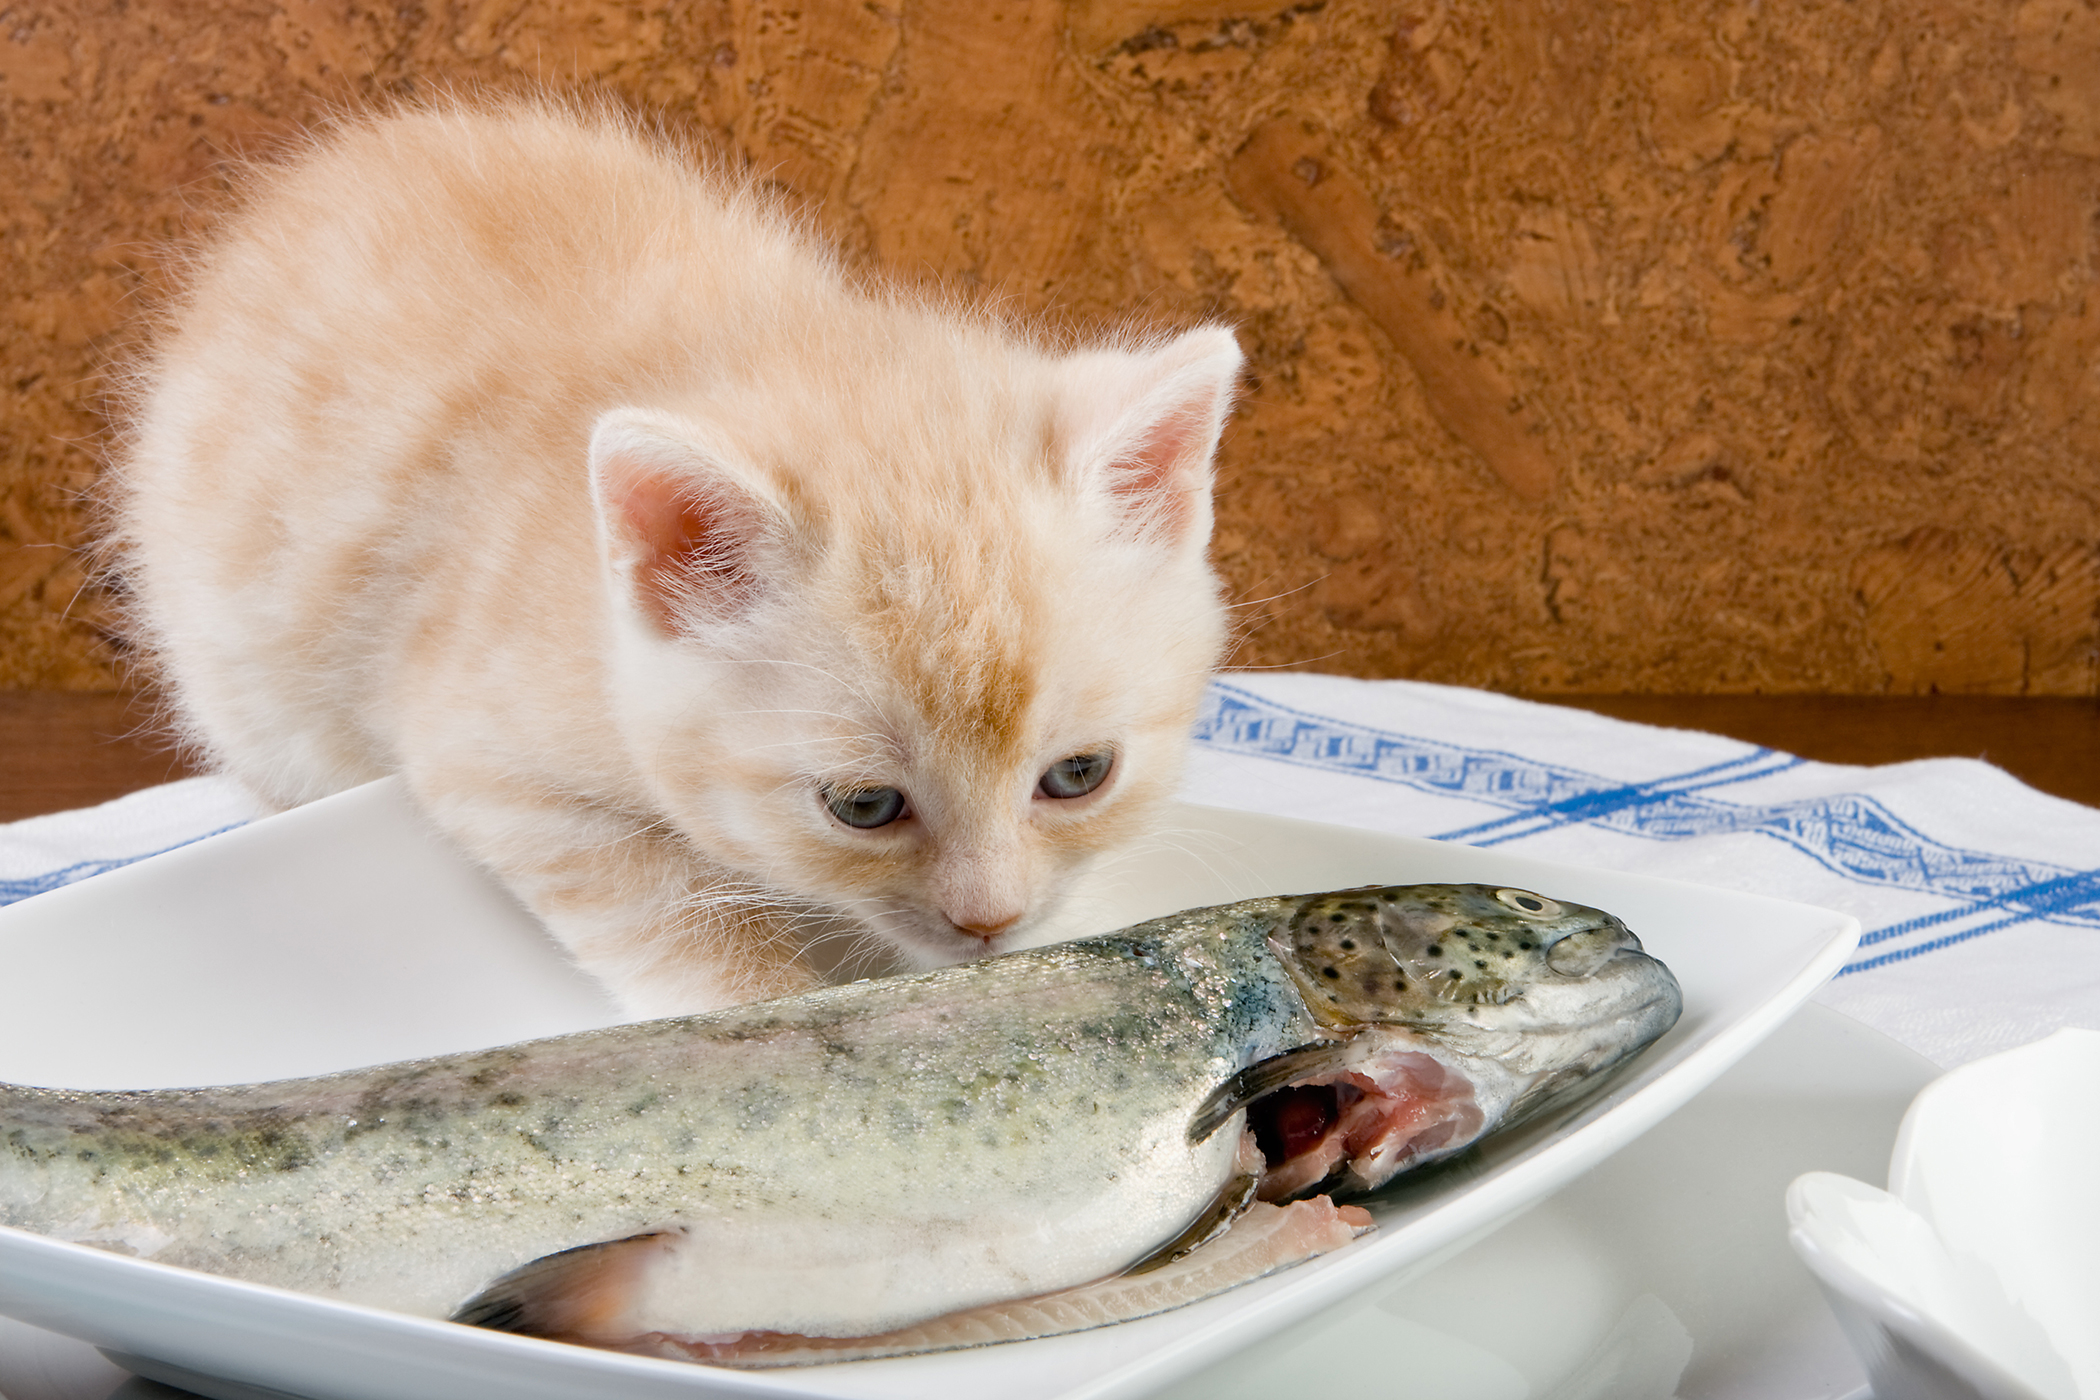 Fish Allergy in Cats